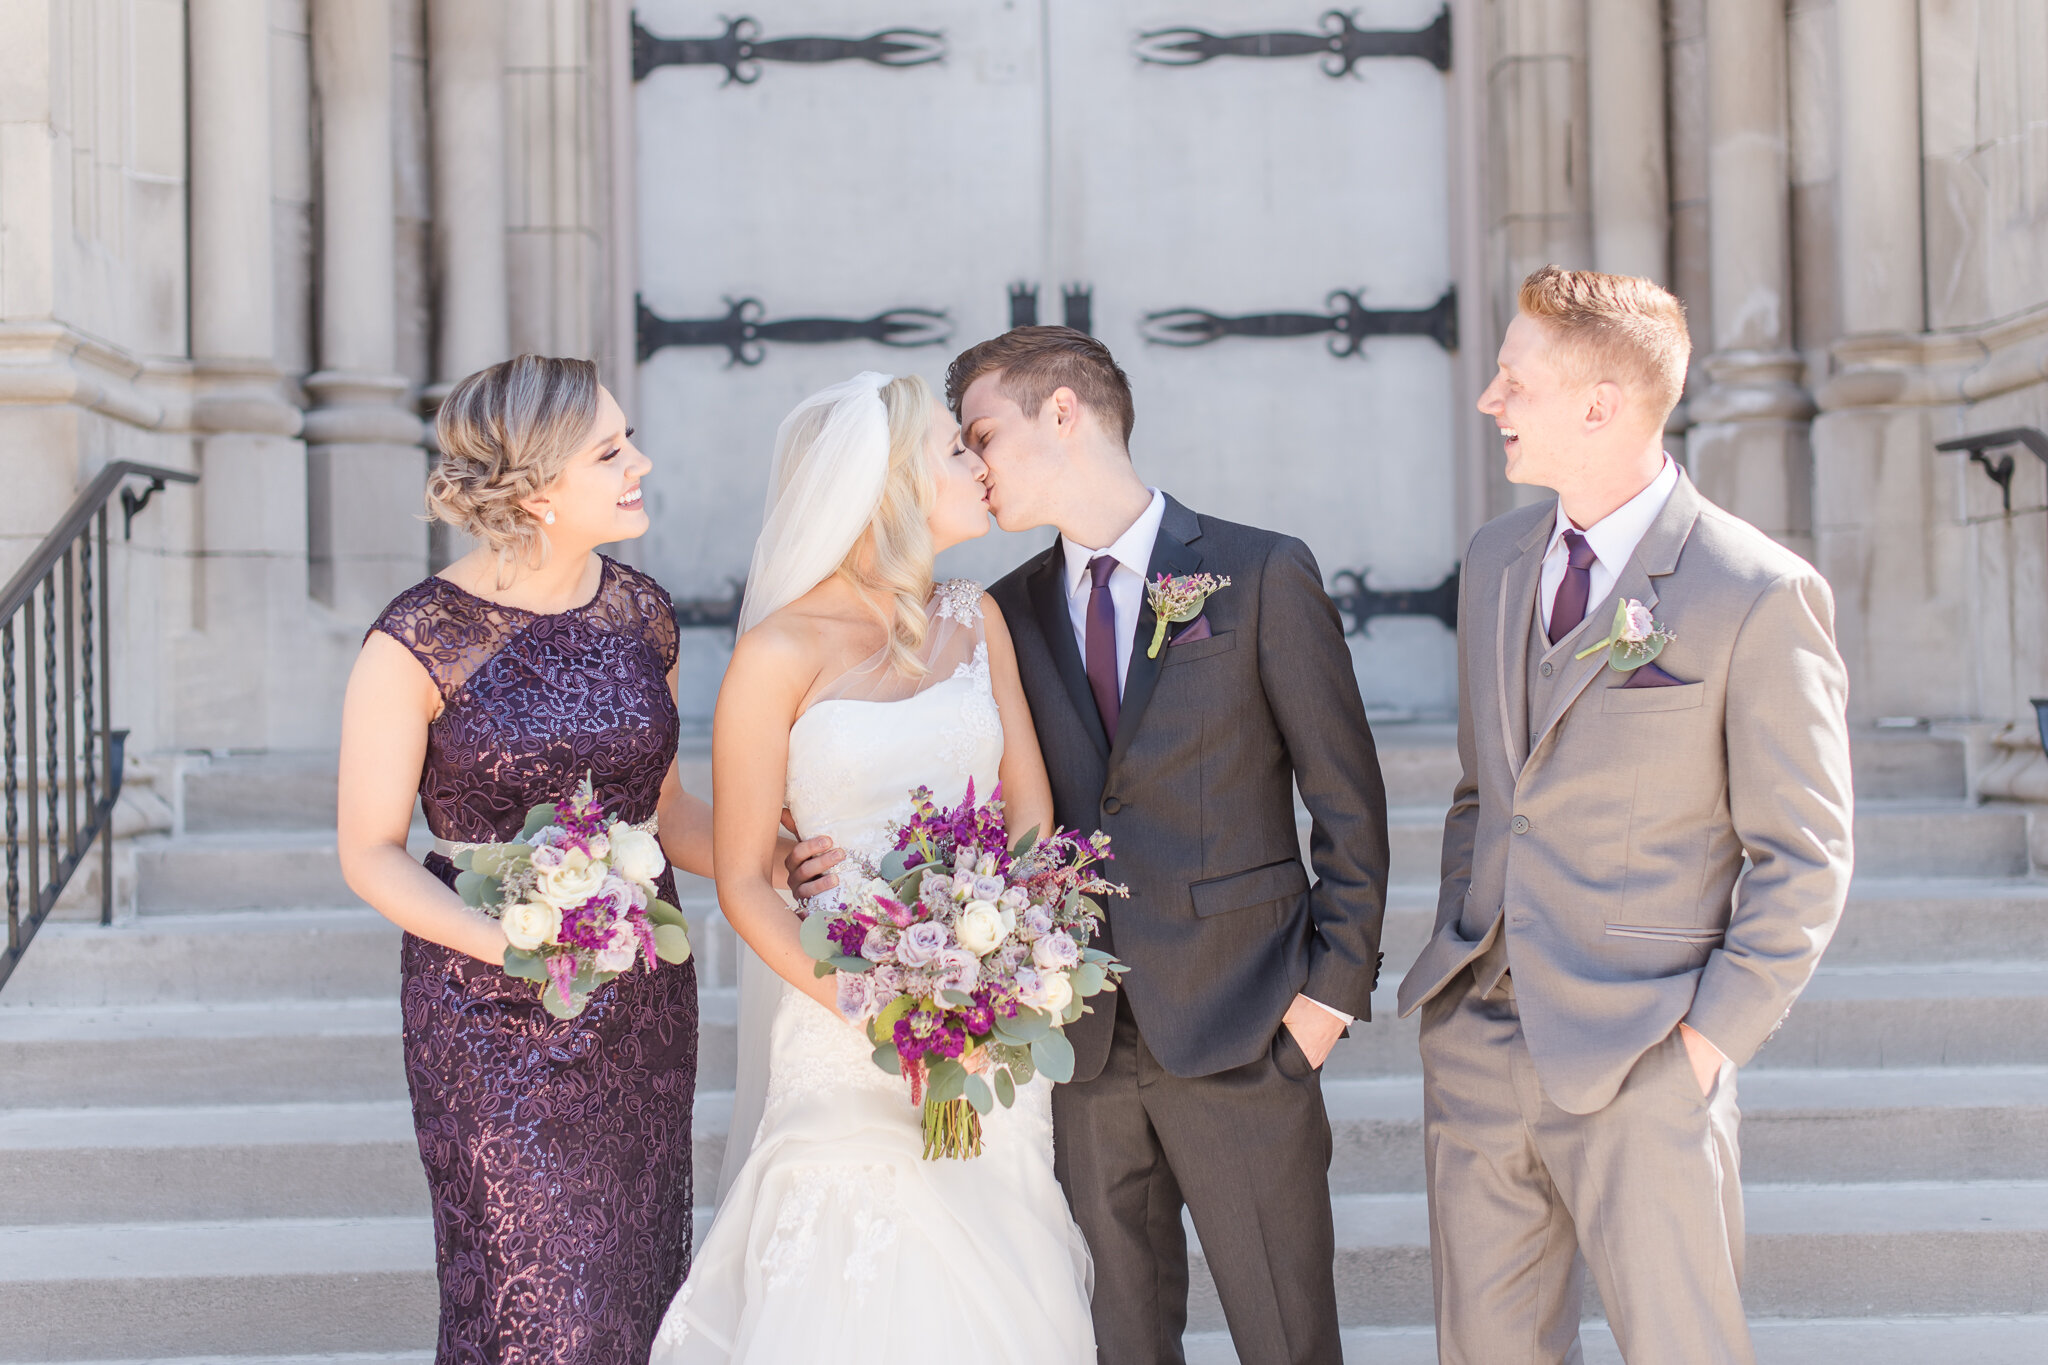 Downtown Indianapolis Wedding at Cyrus Place6634.jpg